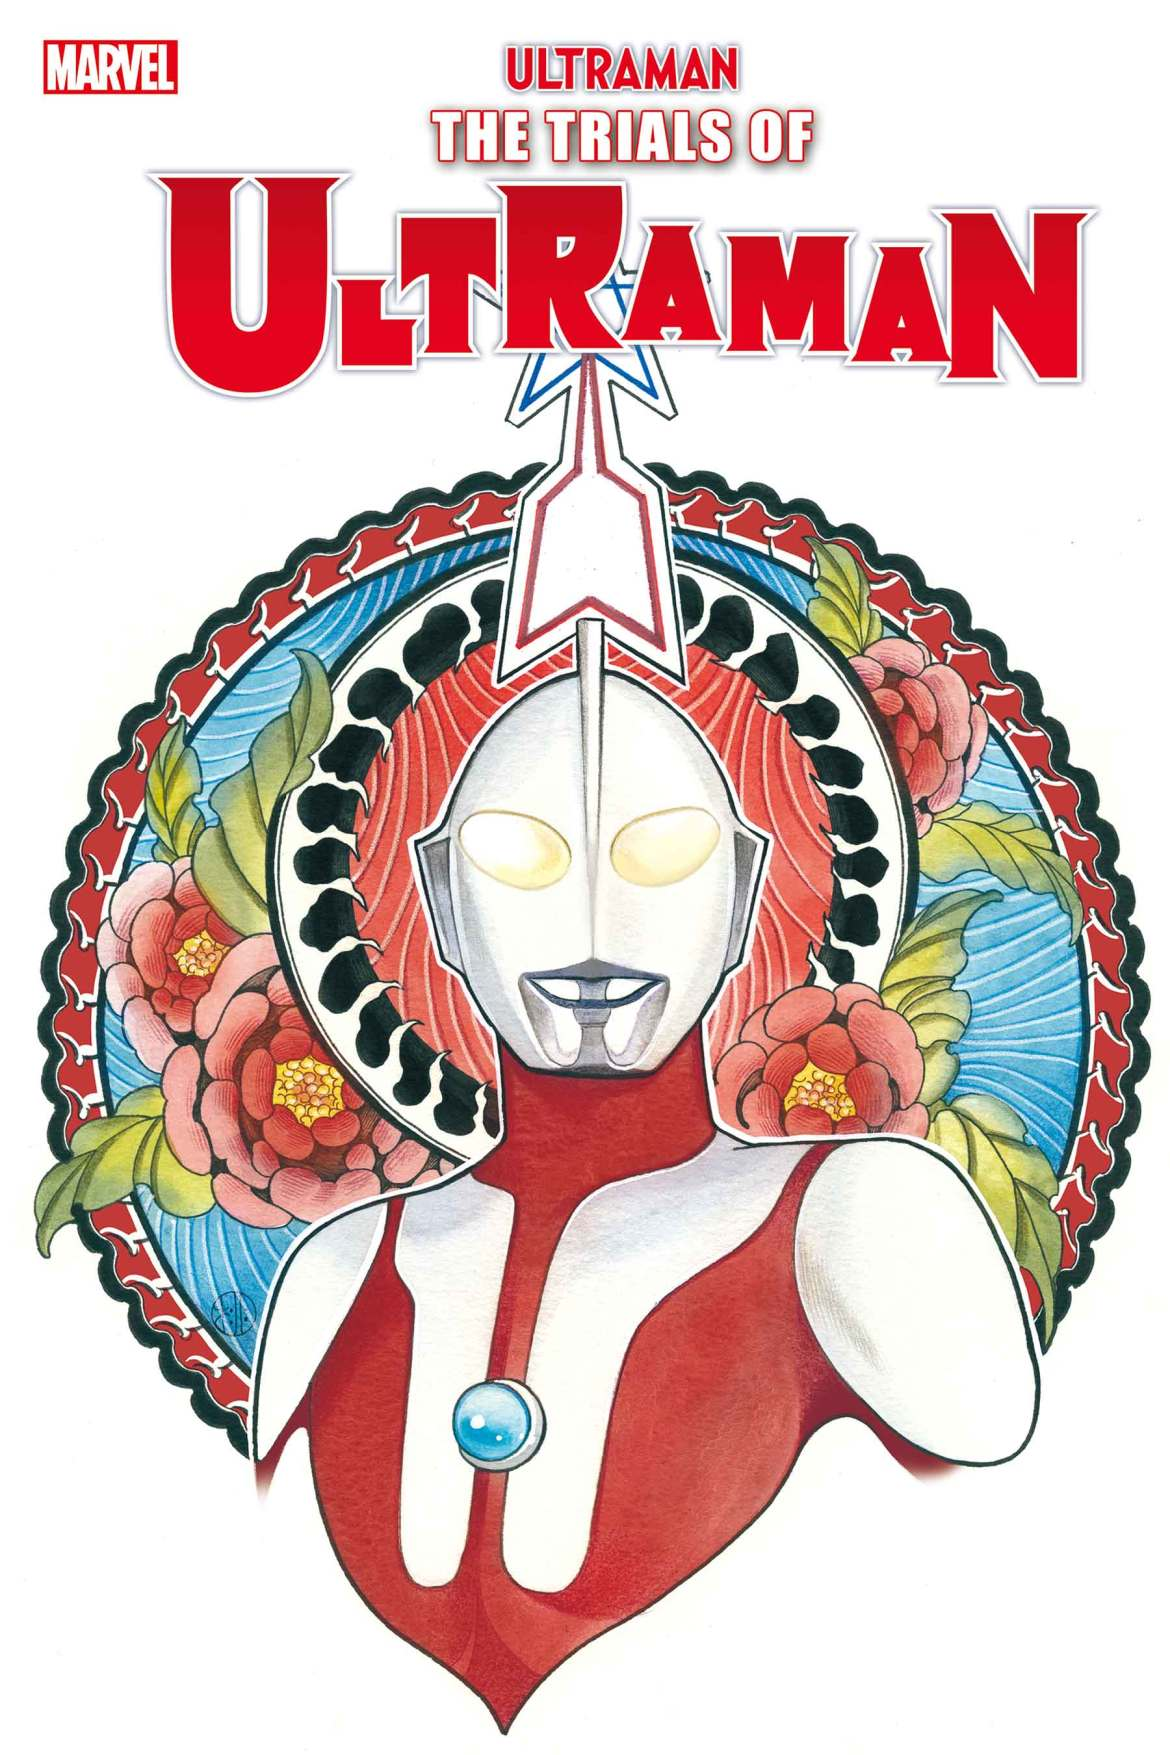 ULTRAMANTRIALS2021001_Momoko_Var Marvel Comics March 2021 Solicitations